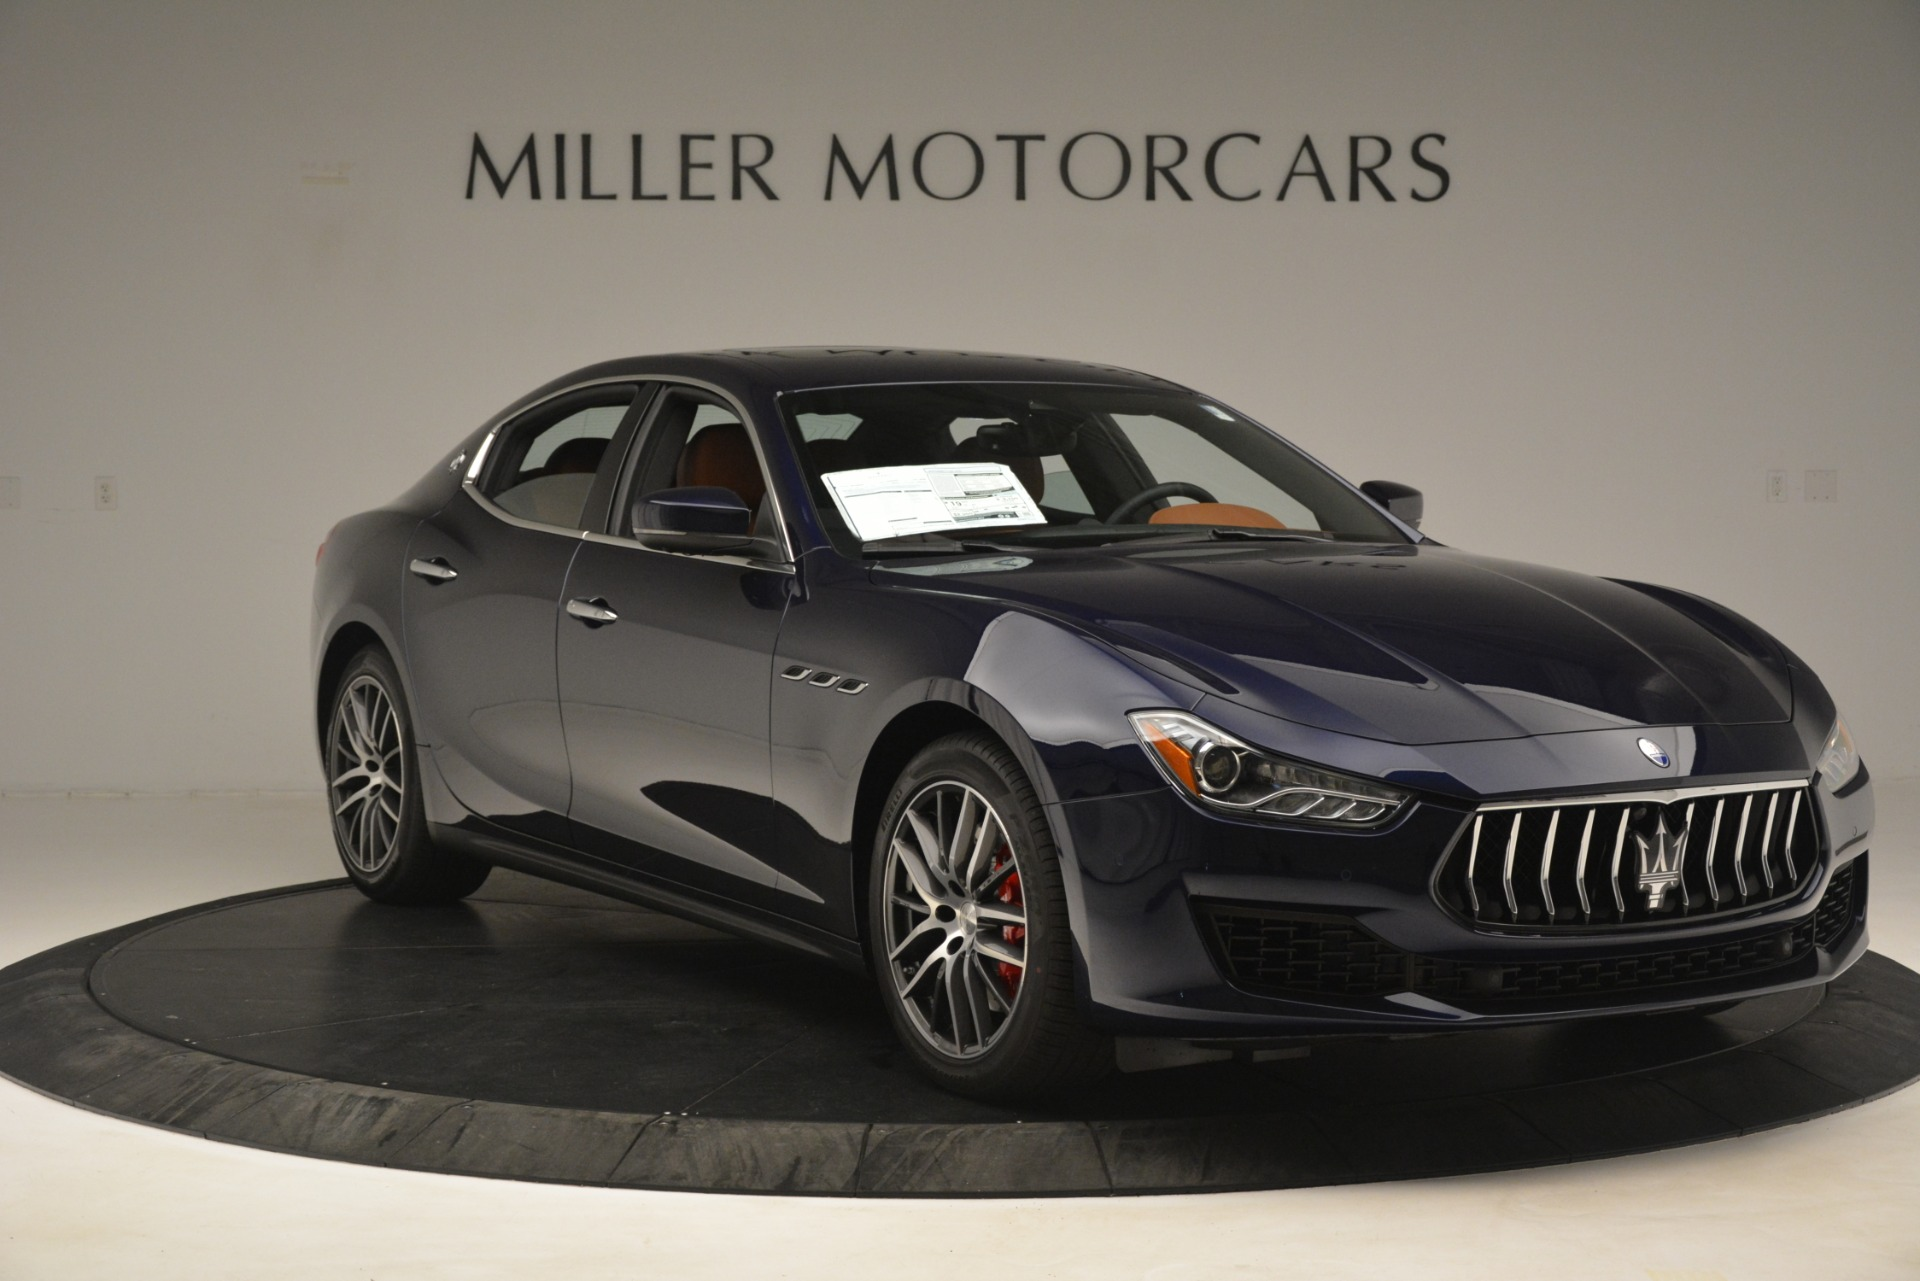 New 2019 Maserati Ghibli S Q4 For Sale In Westport, CT 3106_p11